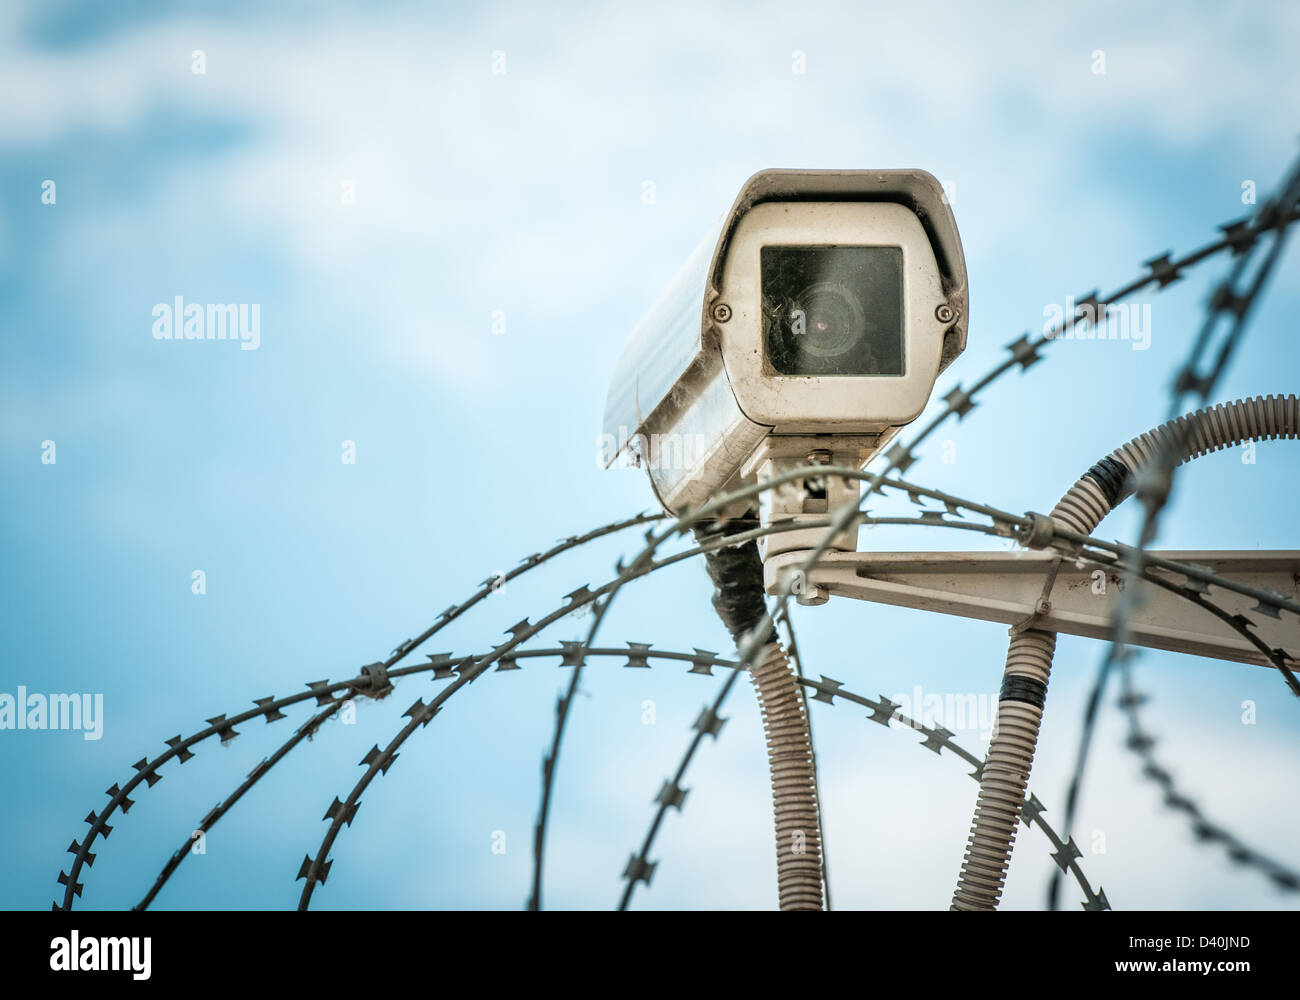 Close up view of security camera hanging among barbwire in prison or other guarded object with blue sky background. - Stock Image